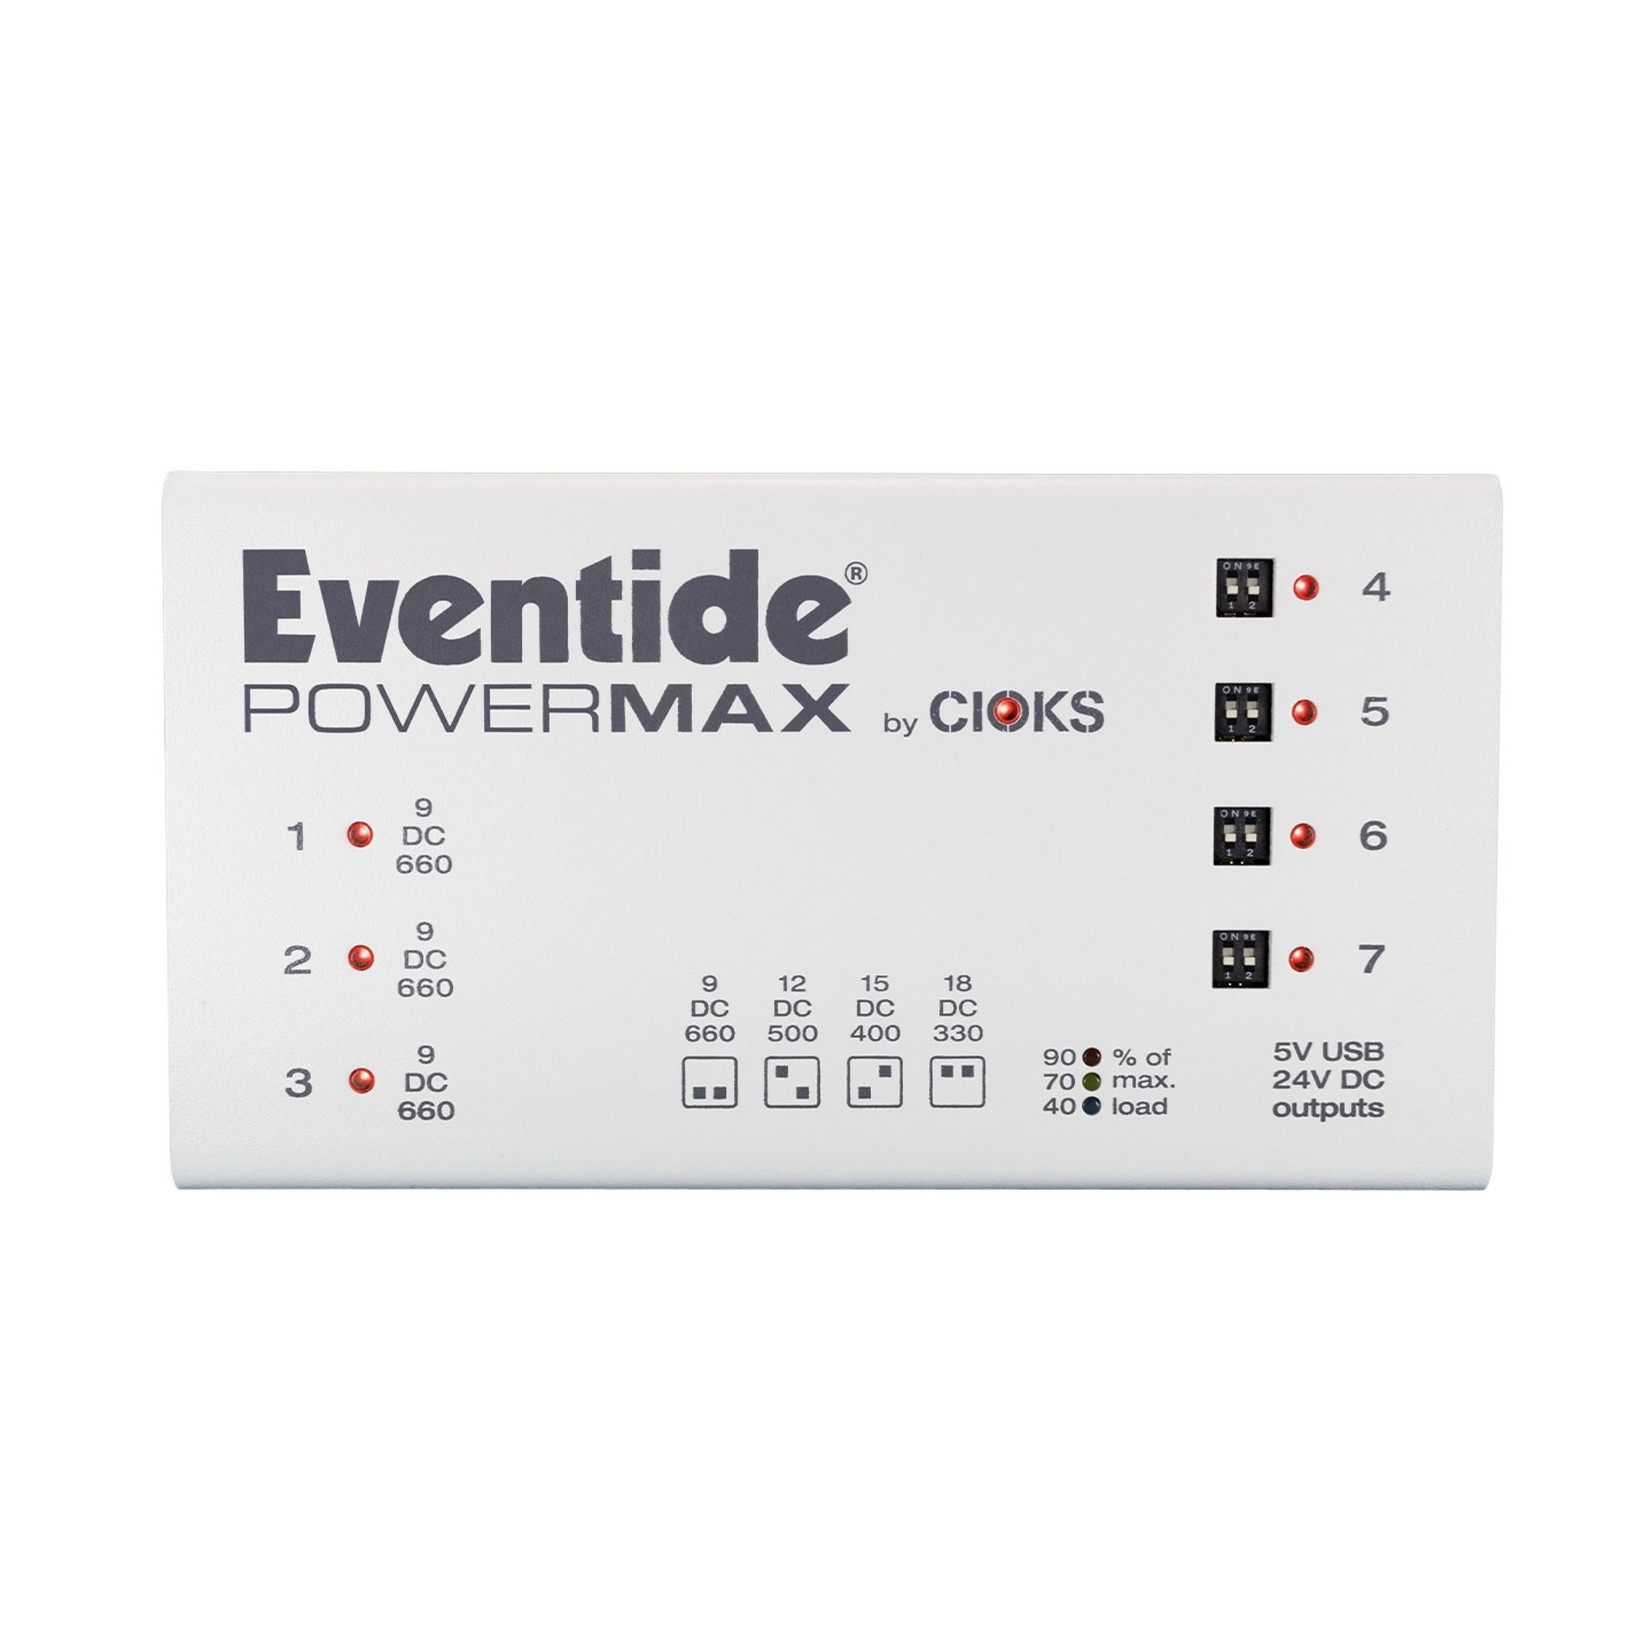 Eventide Eventide PowerMAX mk2 Power Supply for Effects Pedals (7 variable outlets + USB)